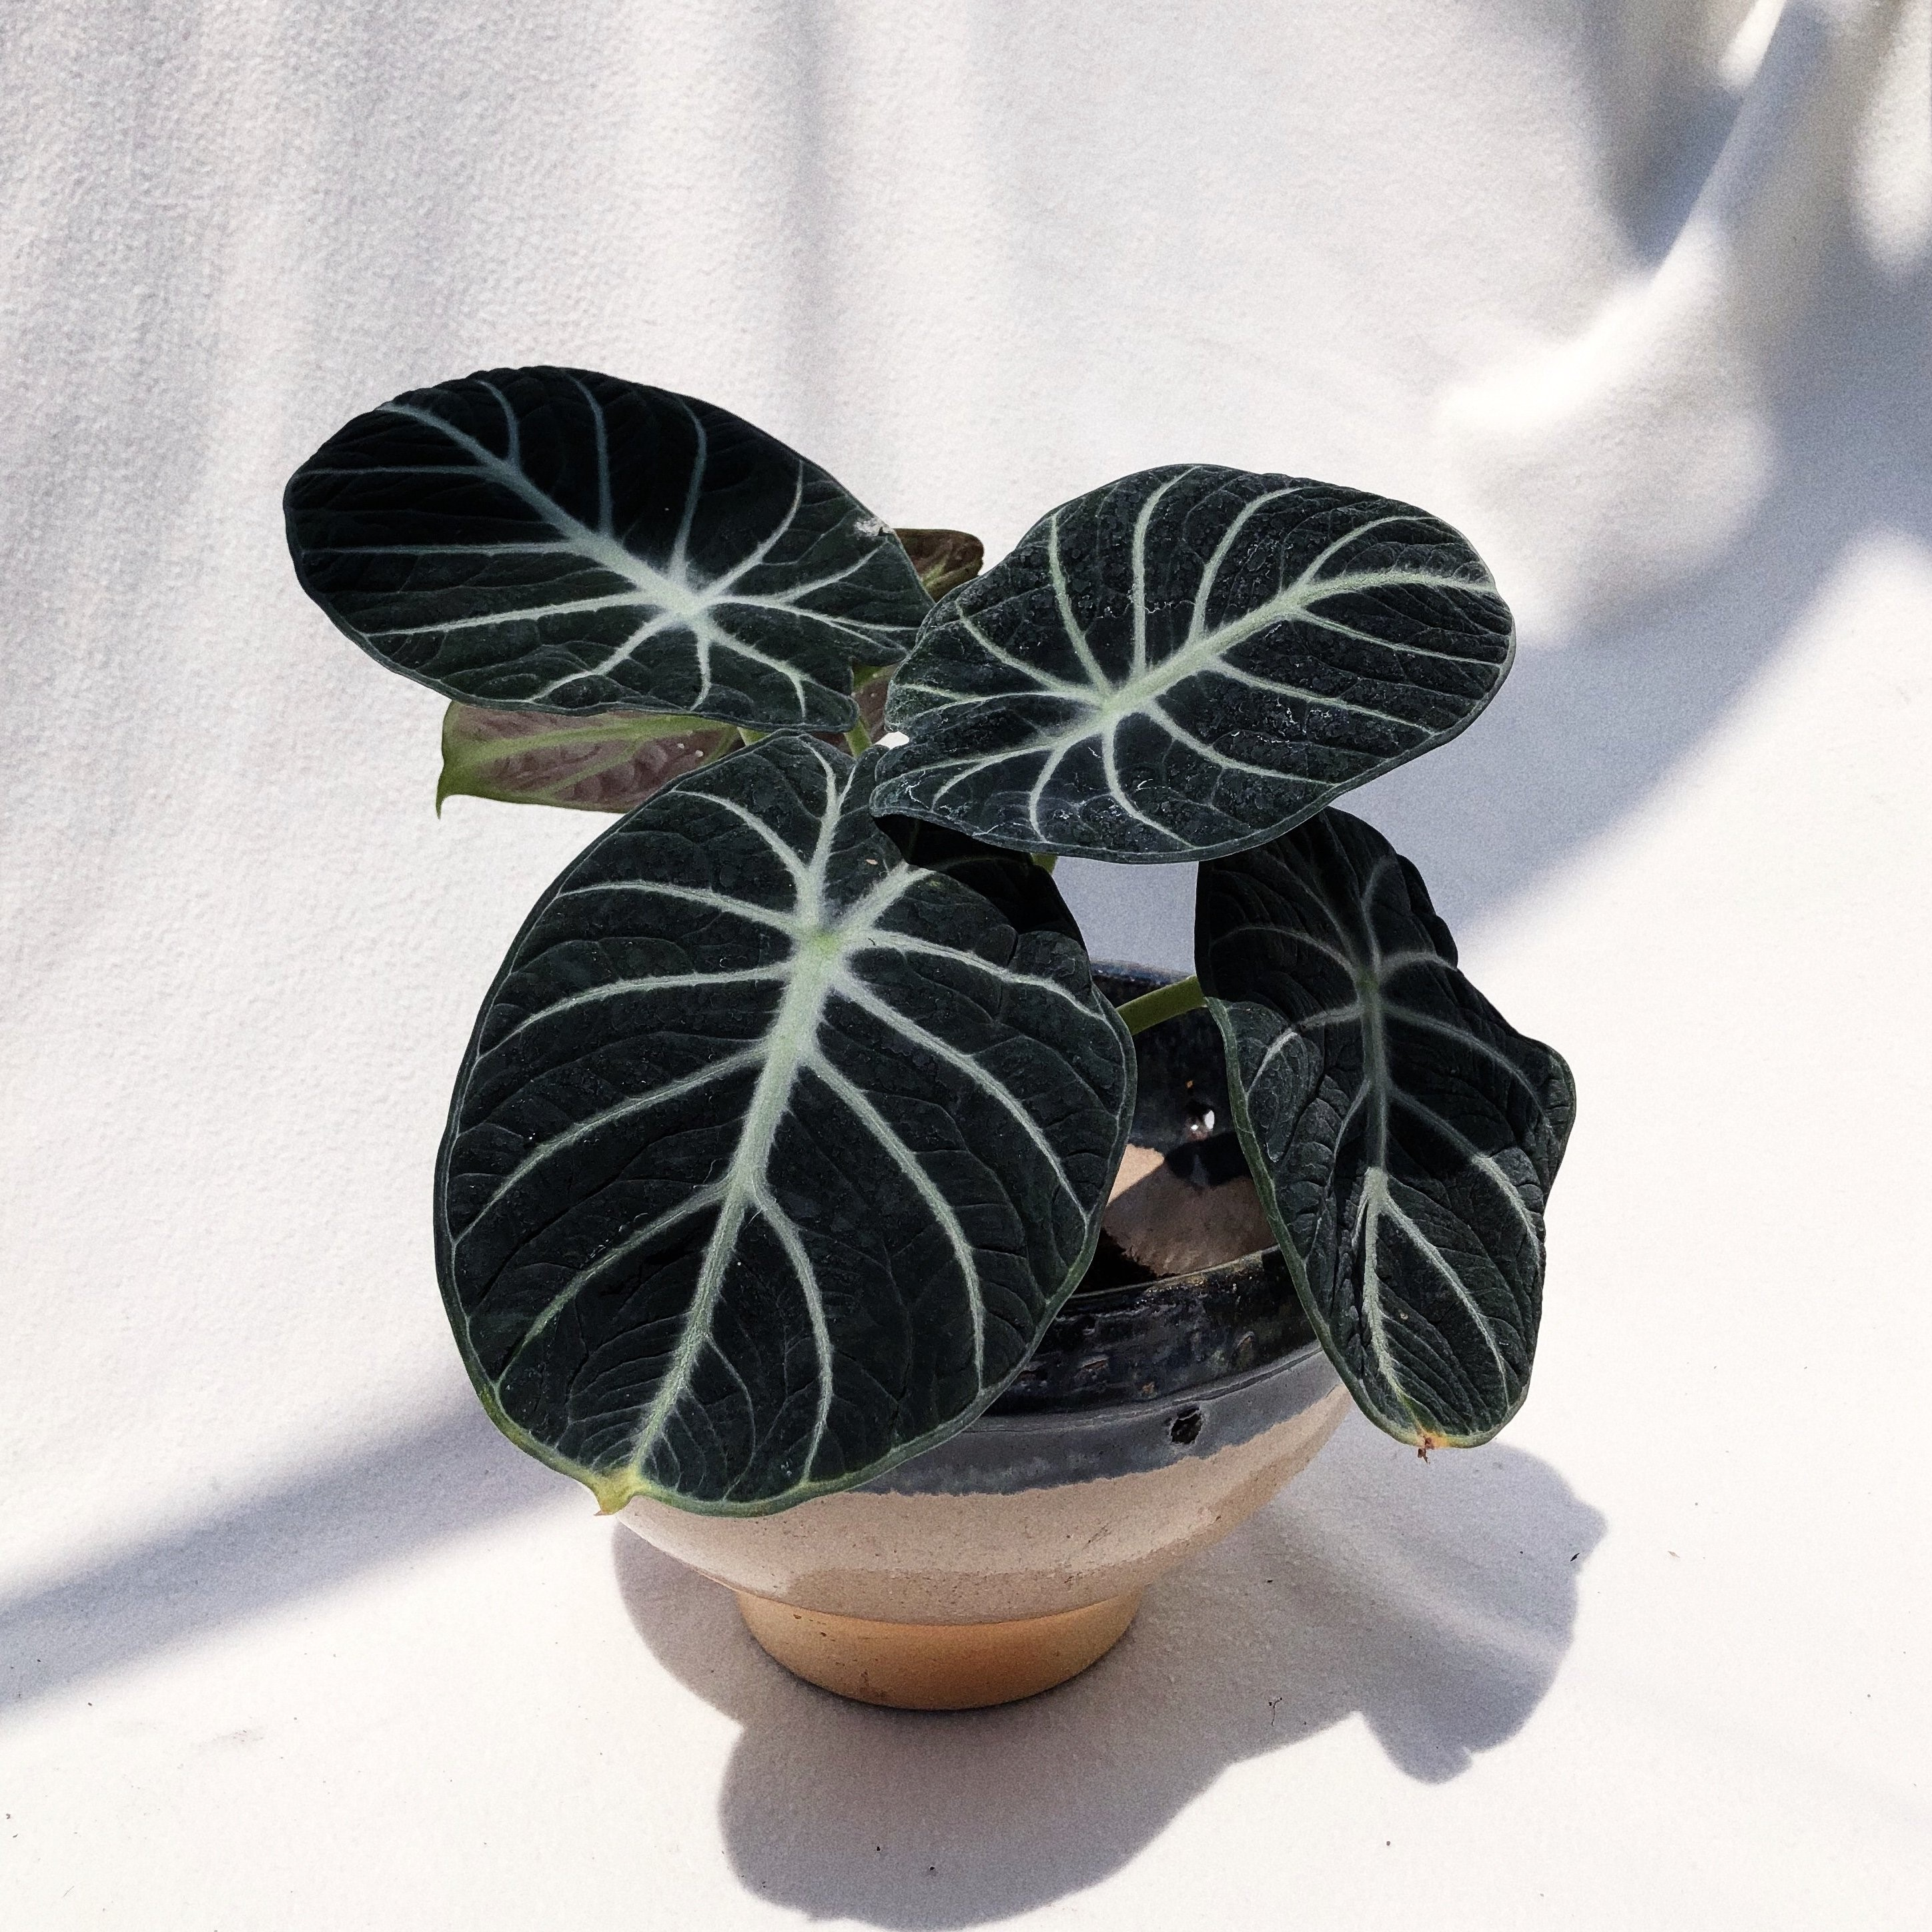 Black Velvet Alocasia Buy Sell Online Pots Planters Urns With Cheap Price Lazada Ph